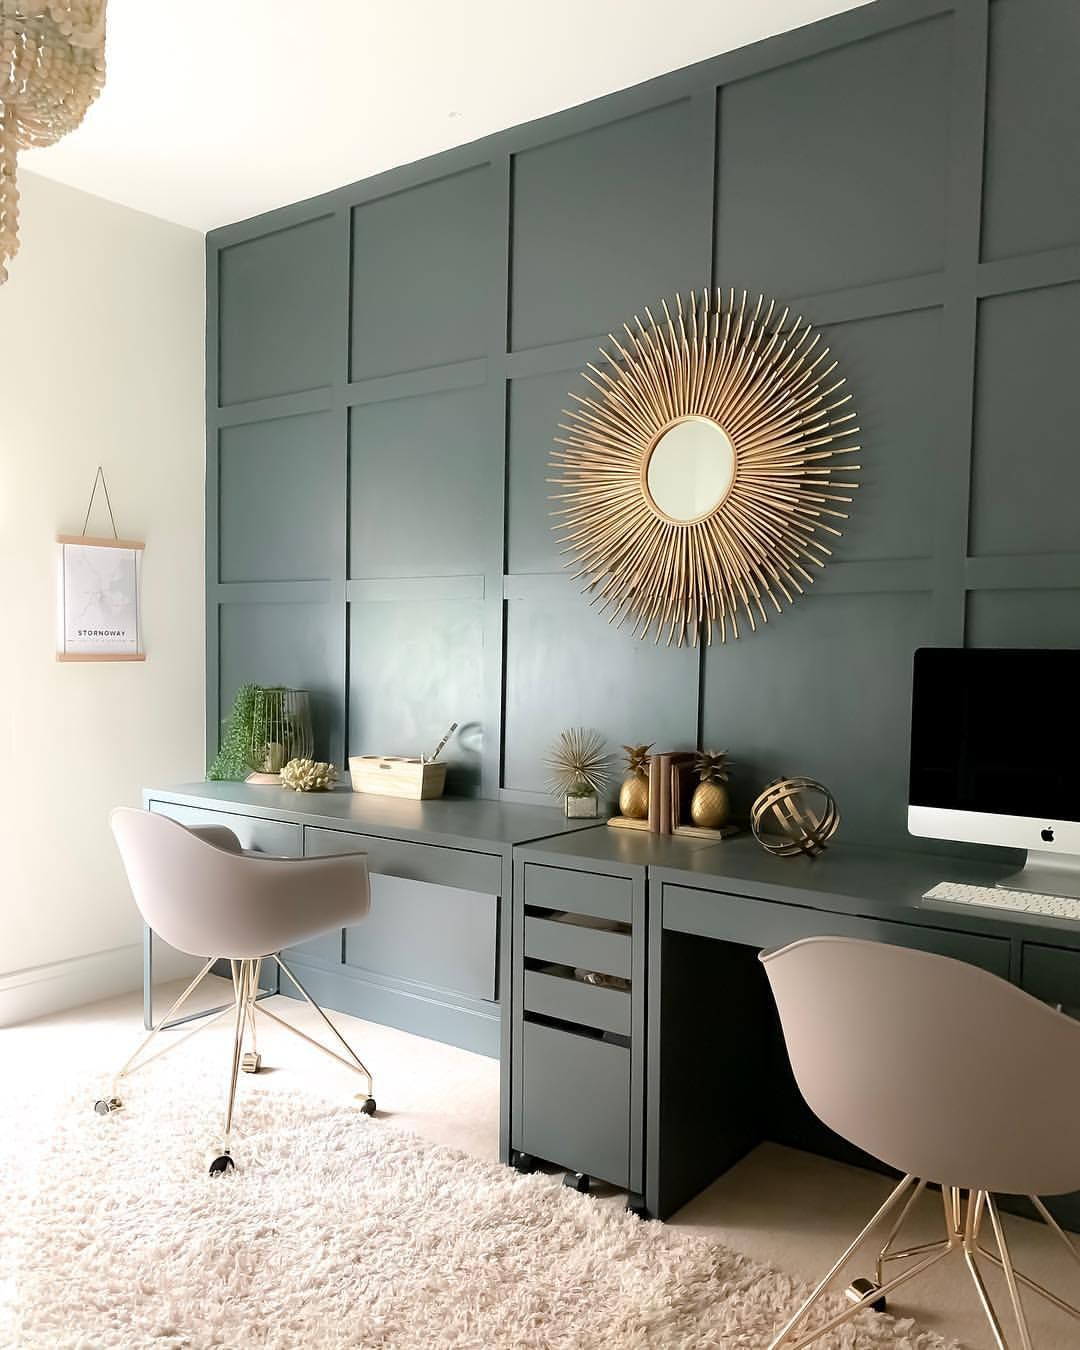 Study Office With Diy Panelled Wall Painted In Farrow Ball Downpipe Home Office Design Home Decor Interior